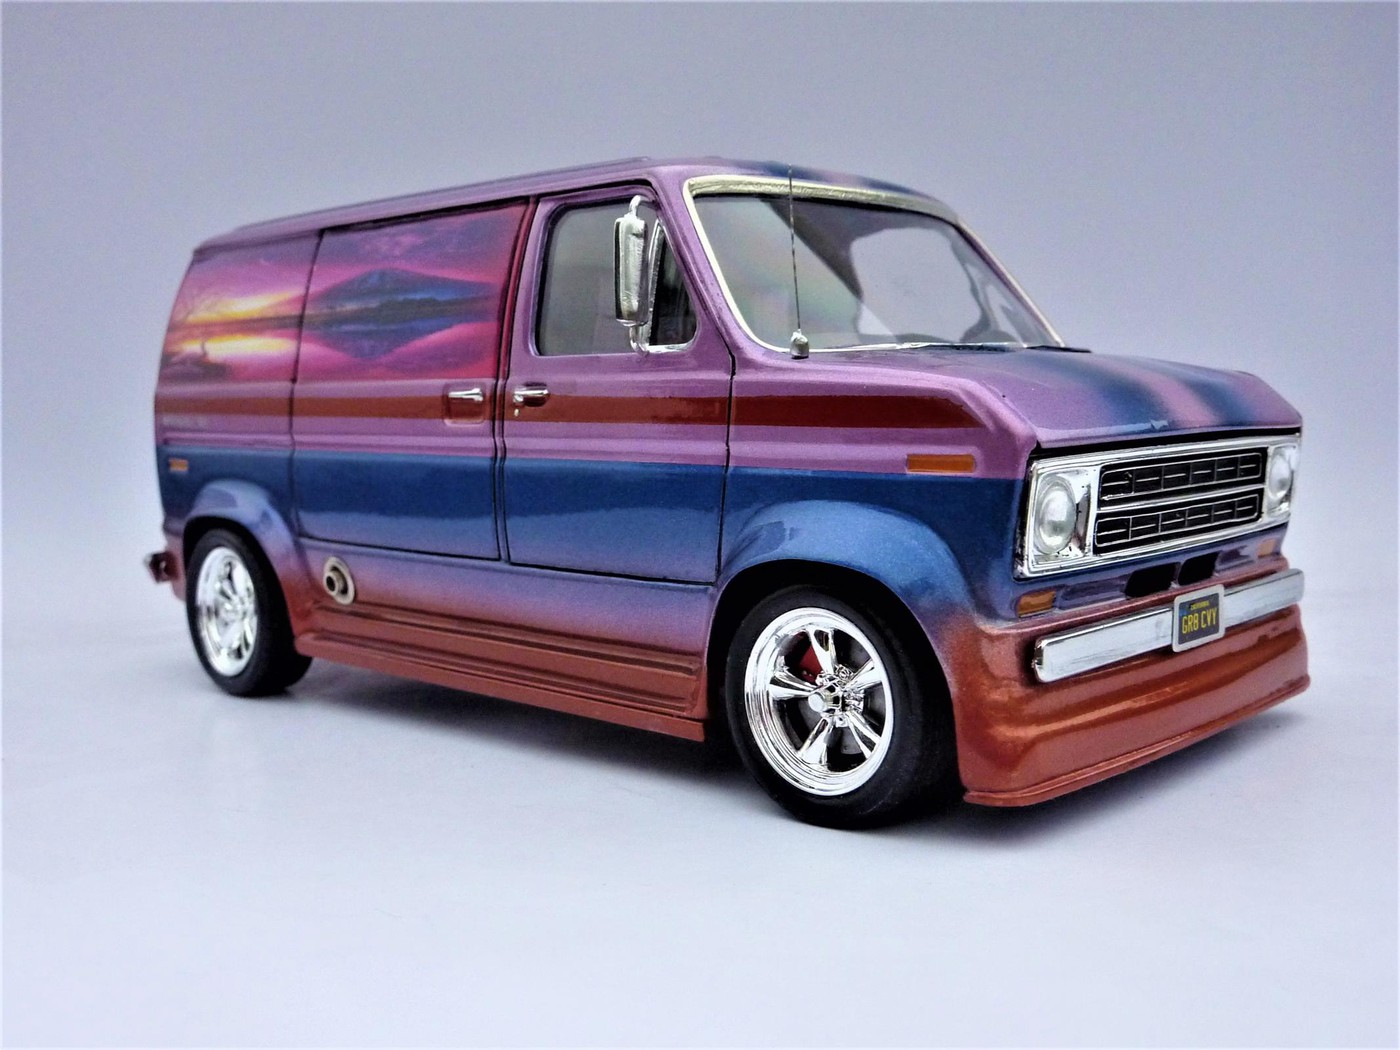 Van Ford Econoline terminé - Page 2 Photo40-vi